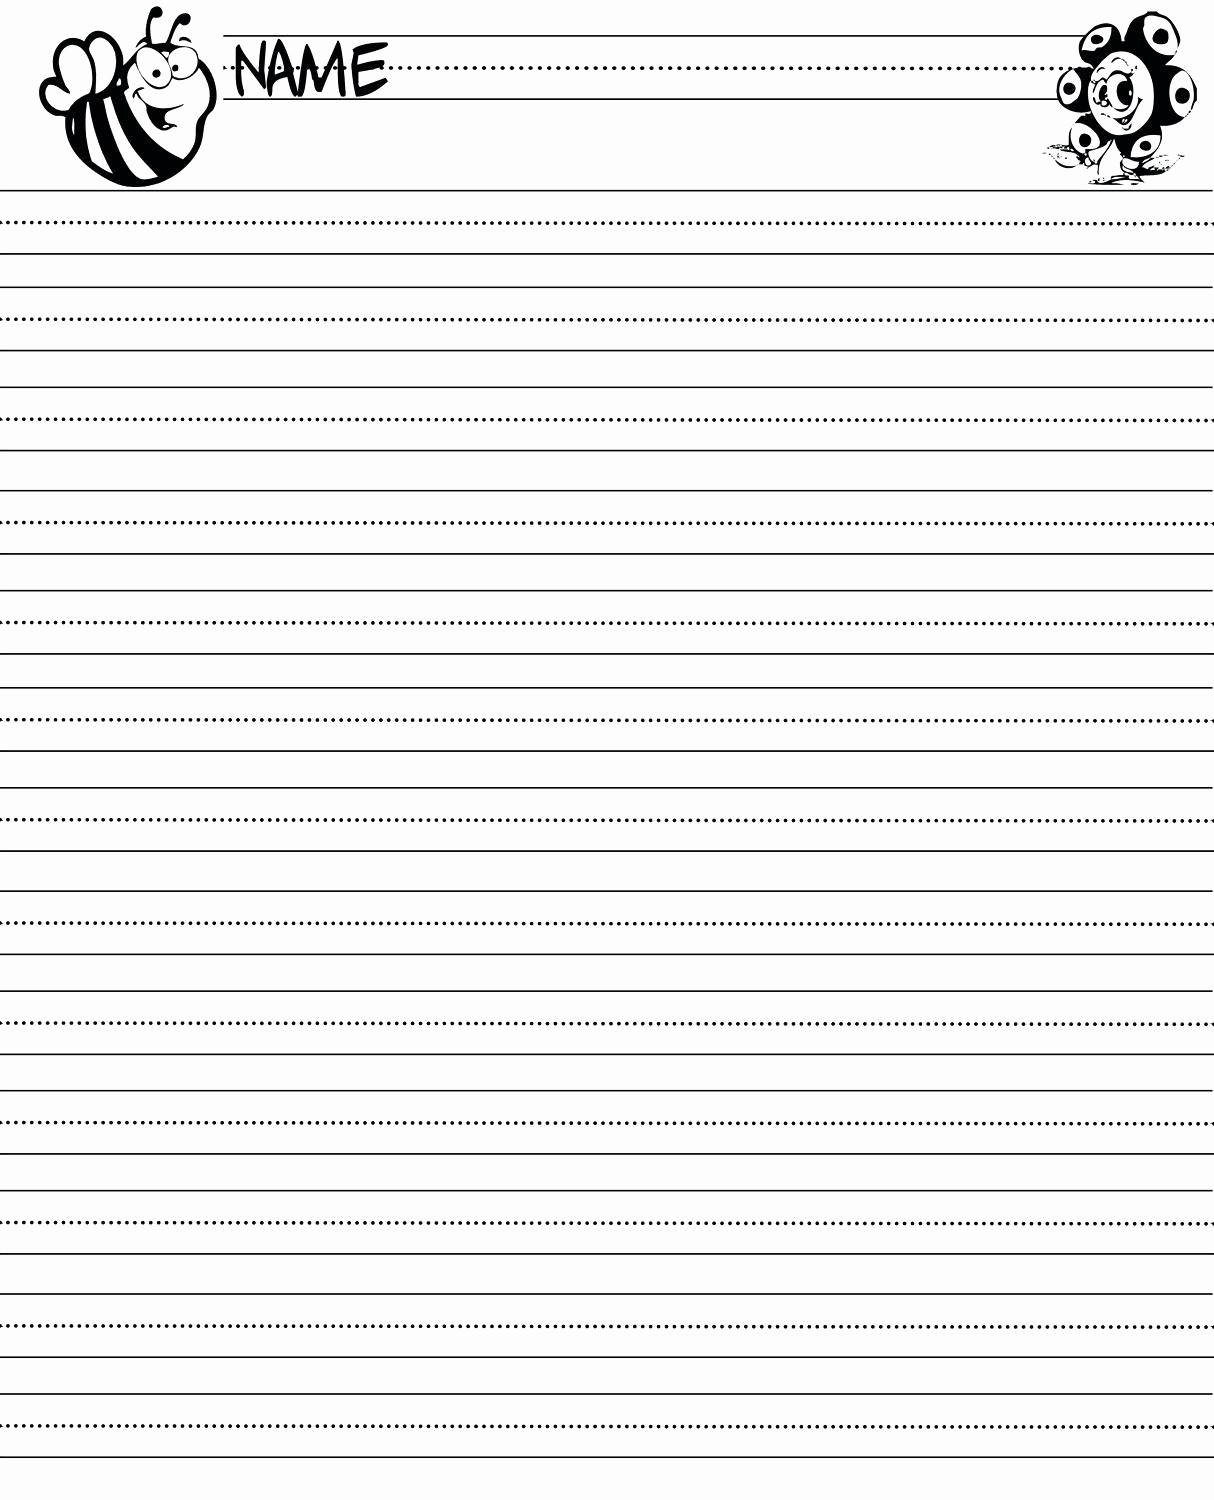 Lined Sheets for Handwriting Practice New Printable Printable Handwriting Worksheets for Kids